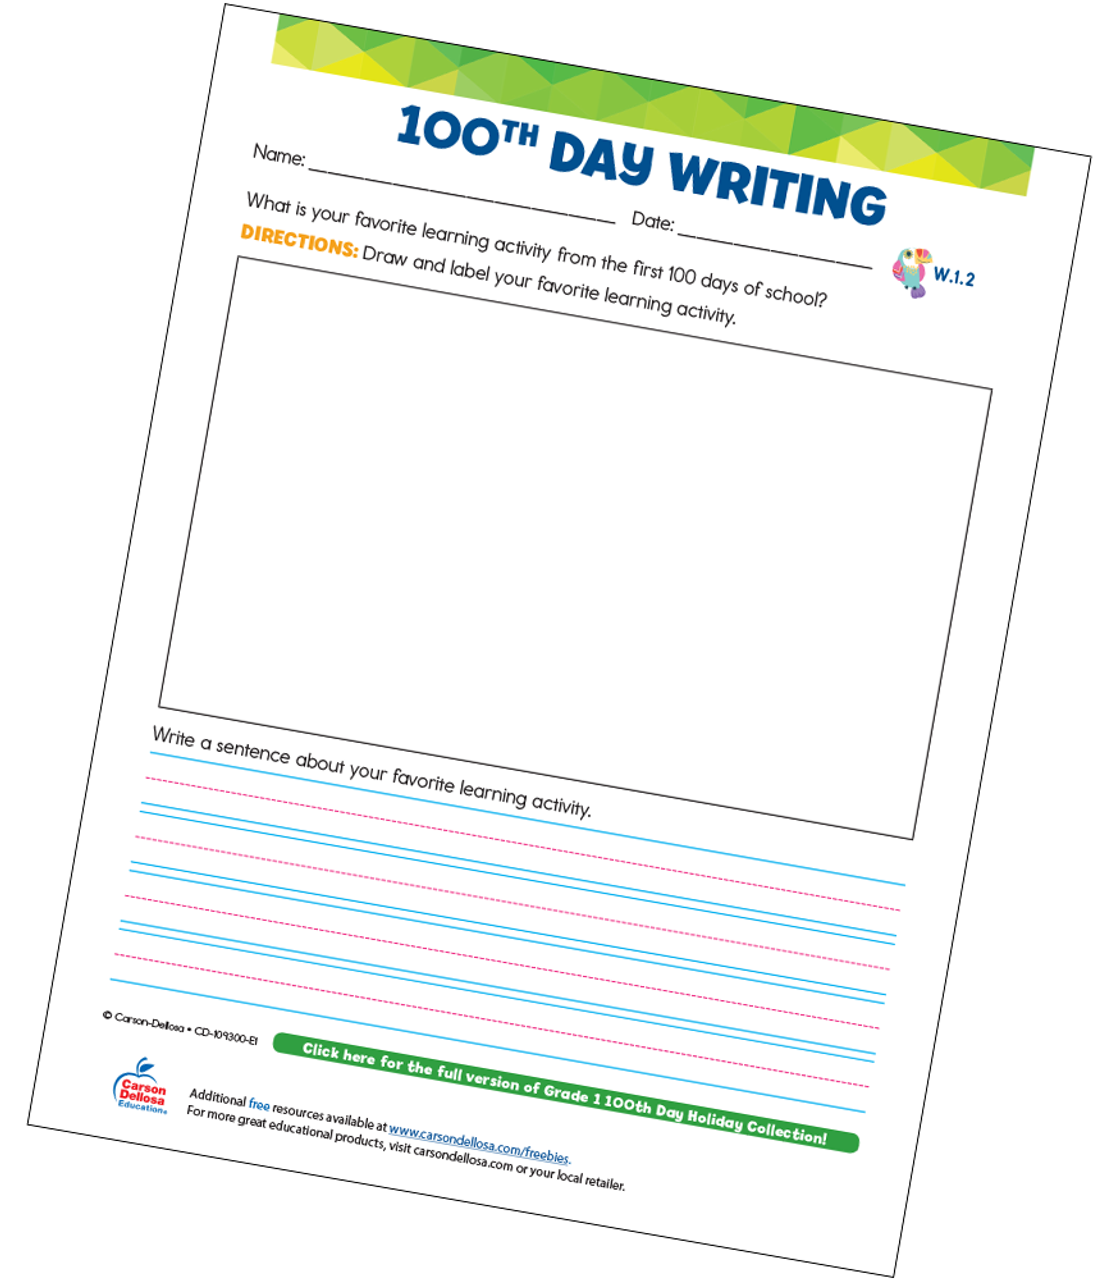 picture regarding Printable Writing Prompt identified as 100th Working day Producing Instructed Quality 1 Free of charge Printable Carson Dellosa